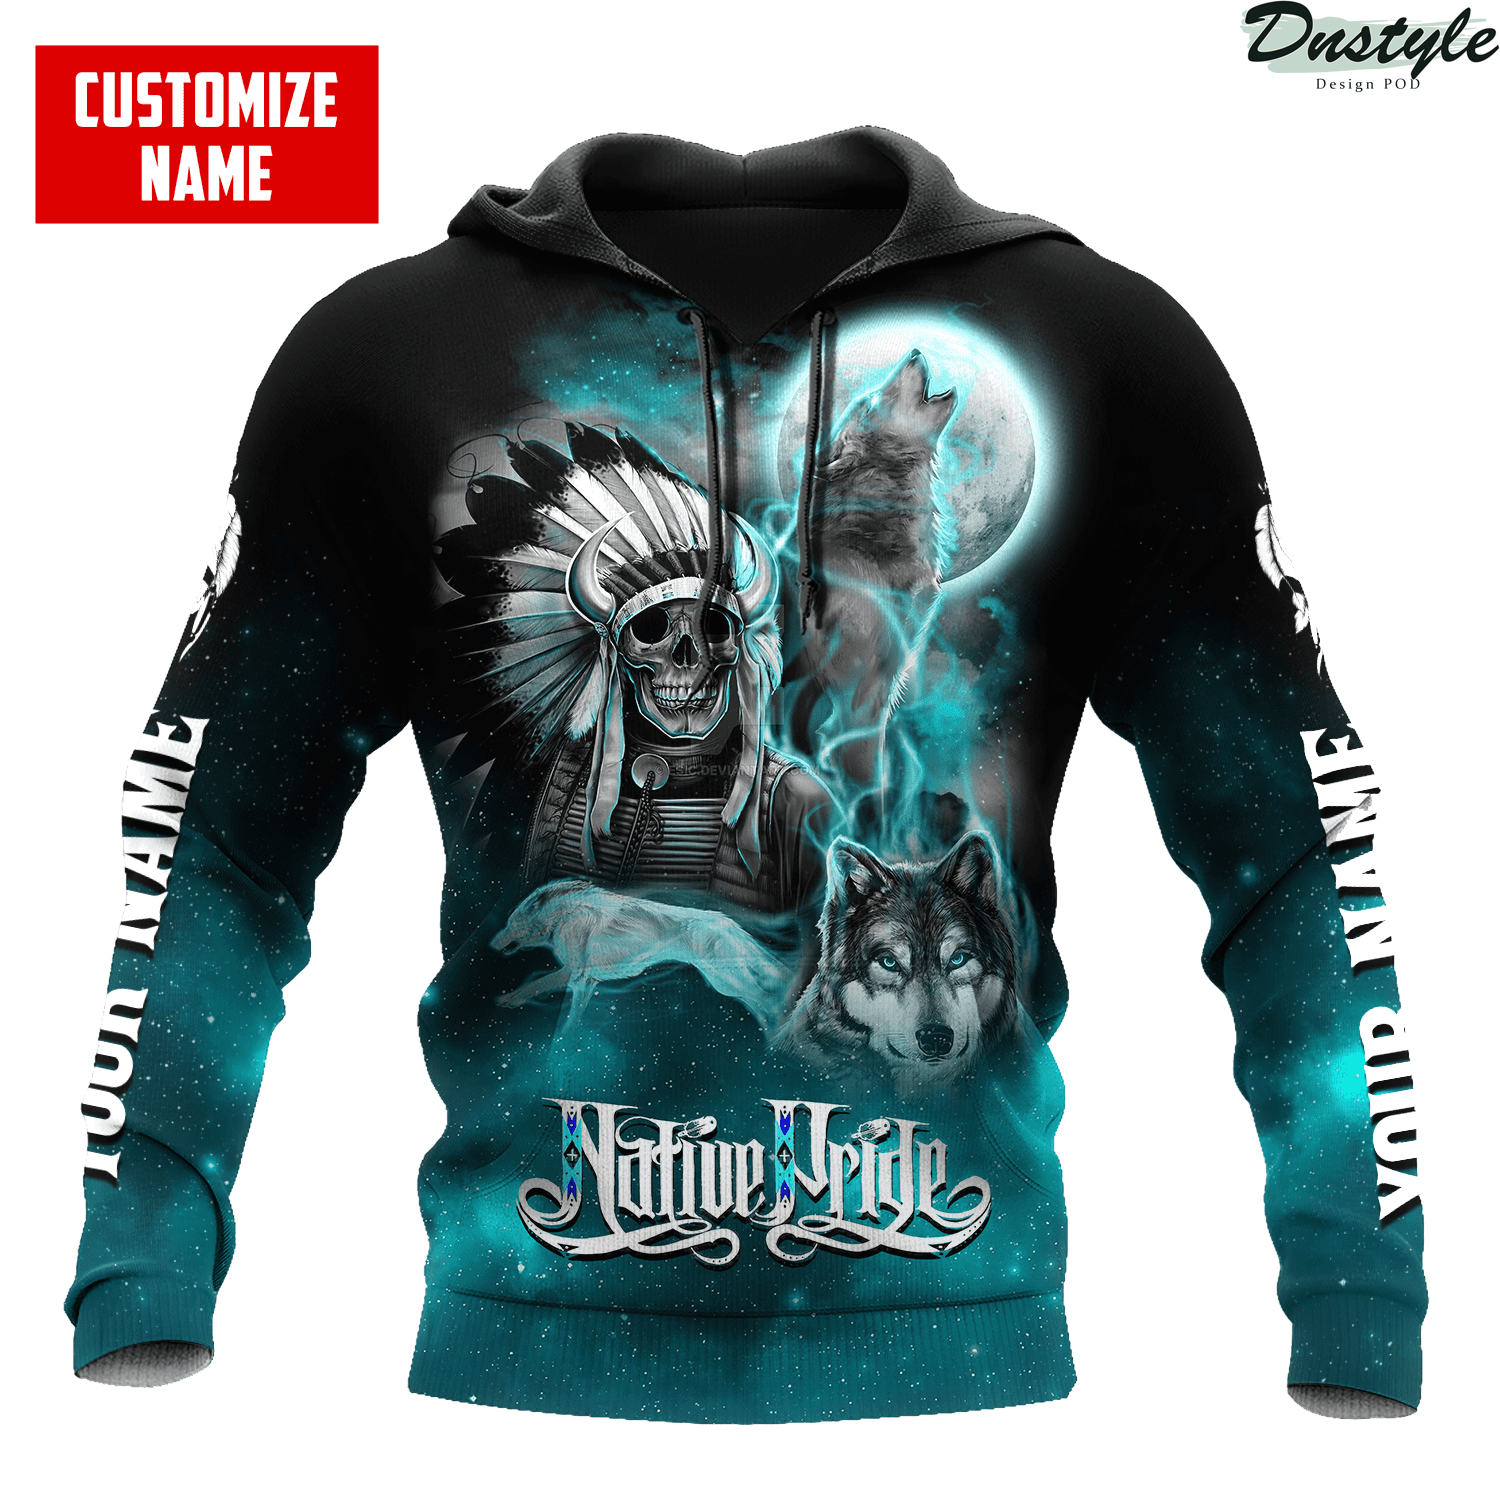 Personalized skull and wolf smoke pattern native pride 3d printed hoodie